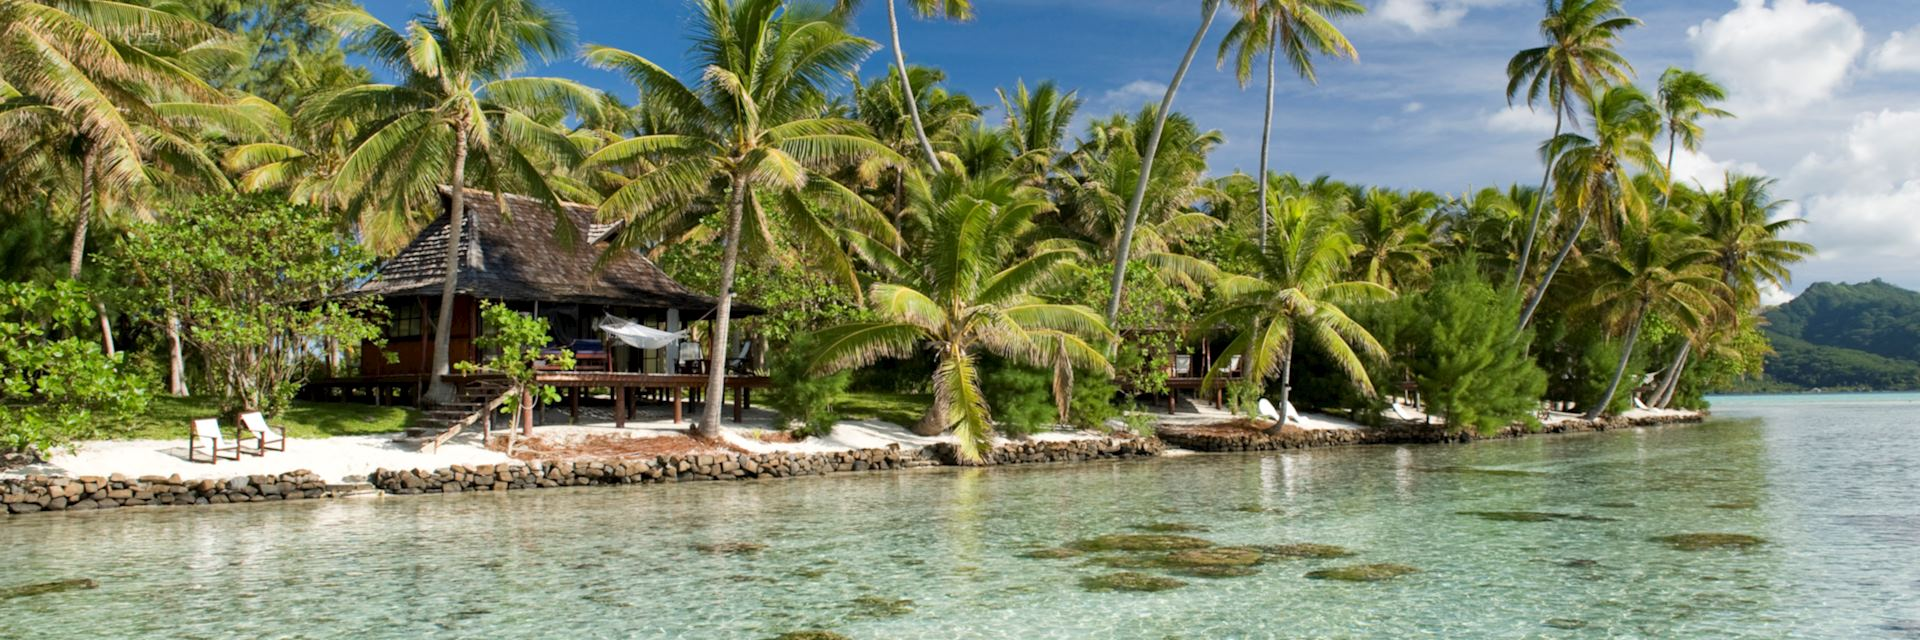 Vahine Island Private Island Resort, French Polynesia